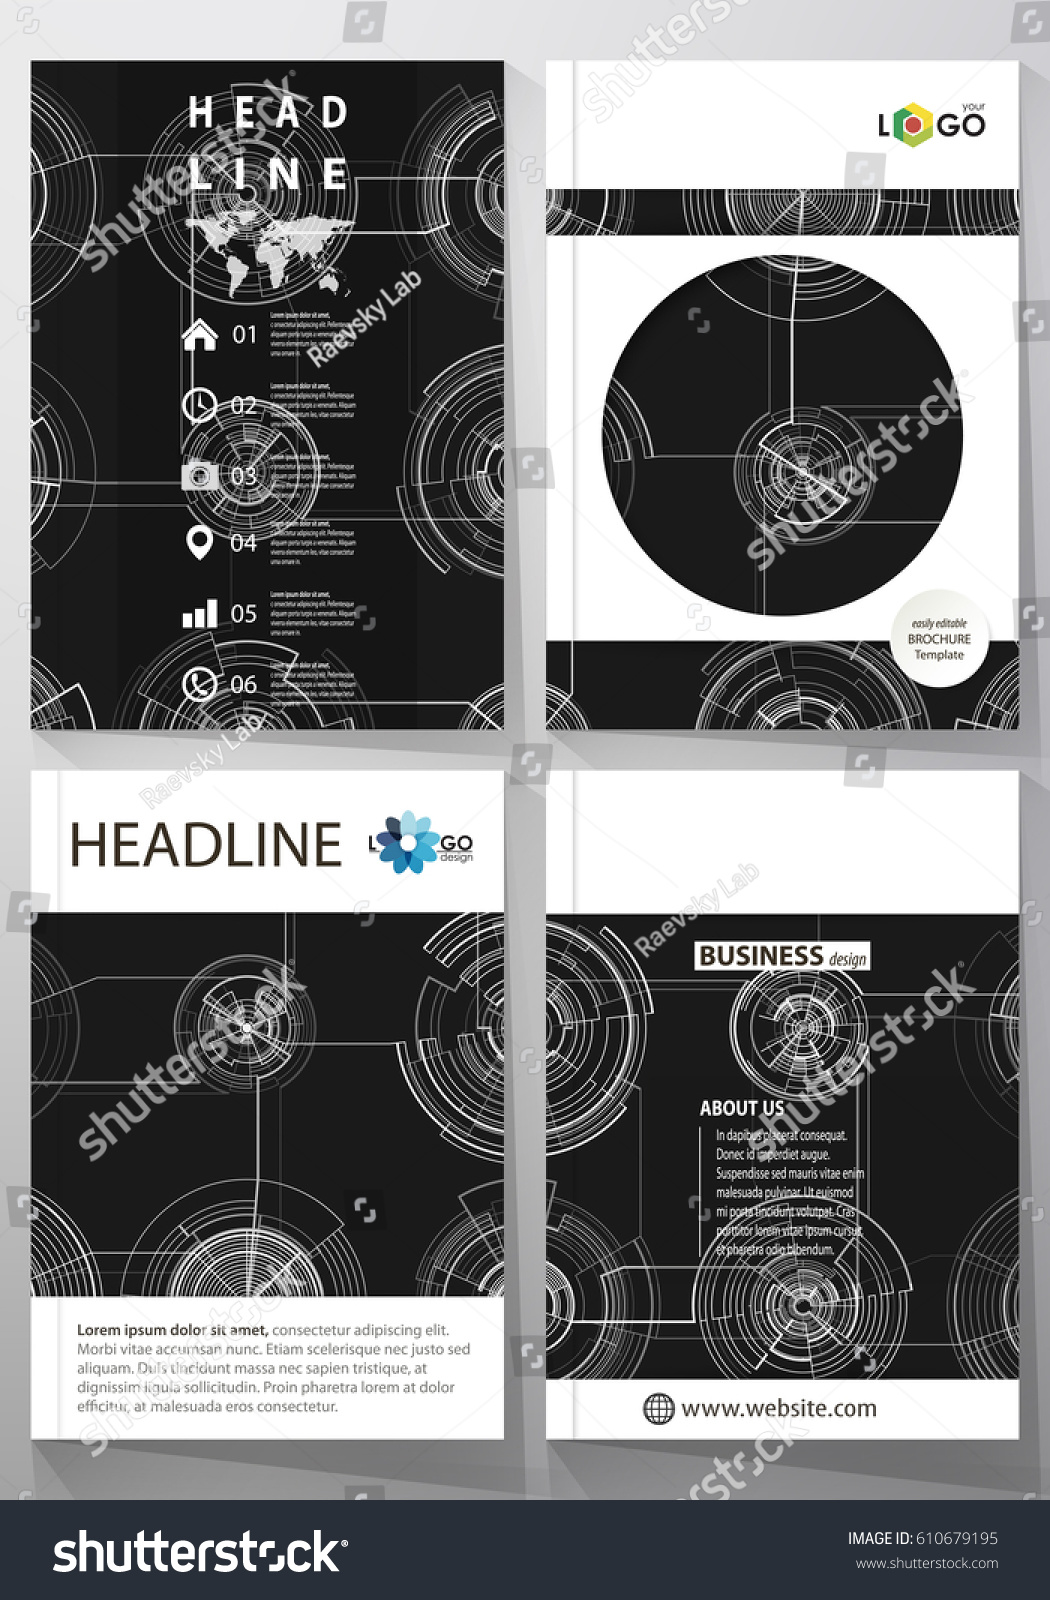 technology brochure templates - business templates brochure magazine flyer annual stock